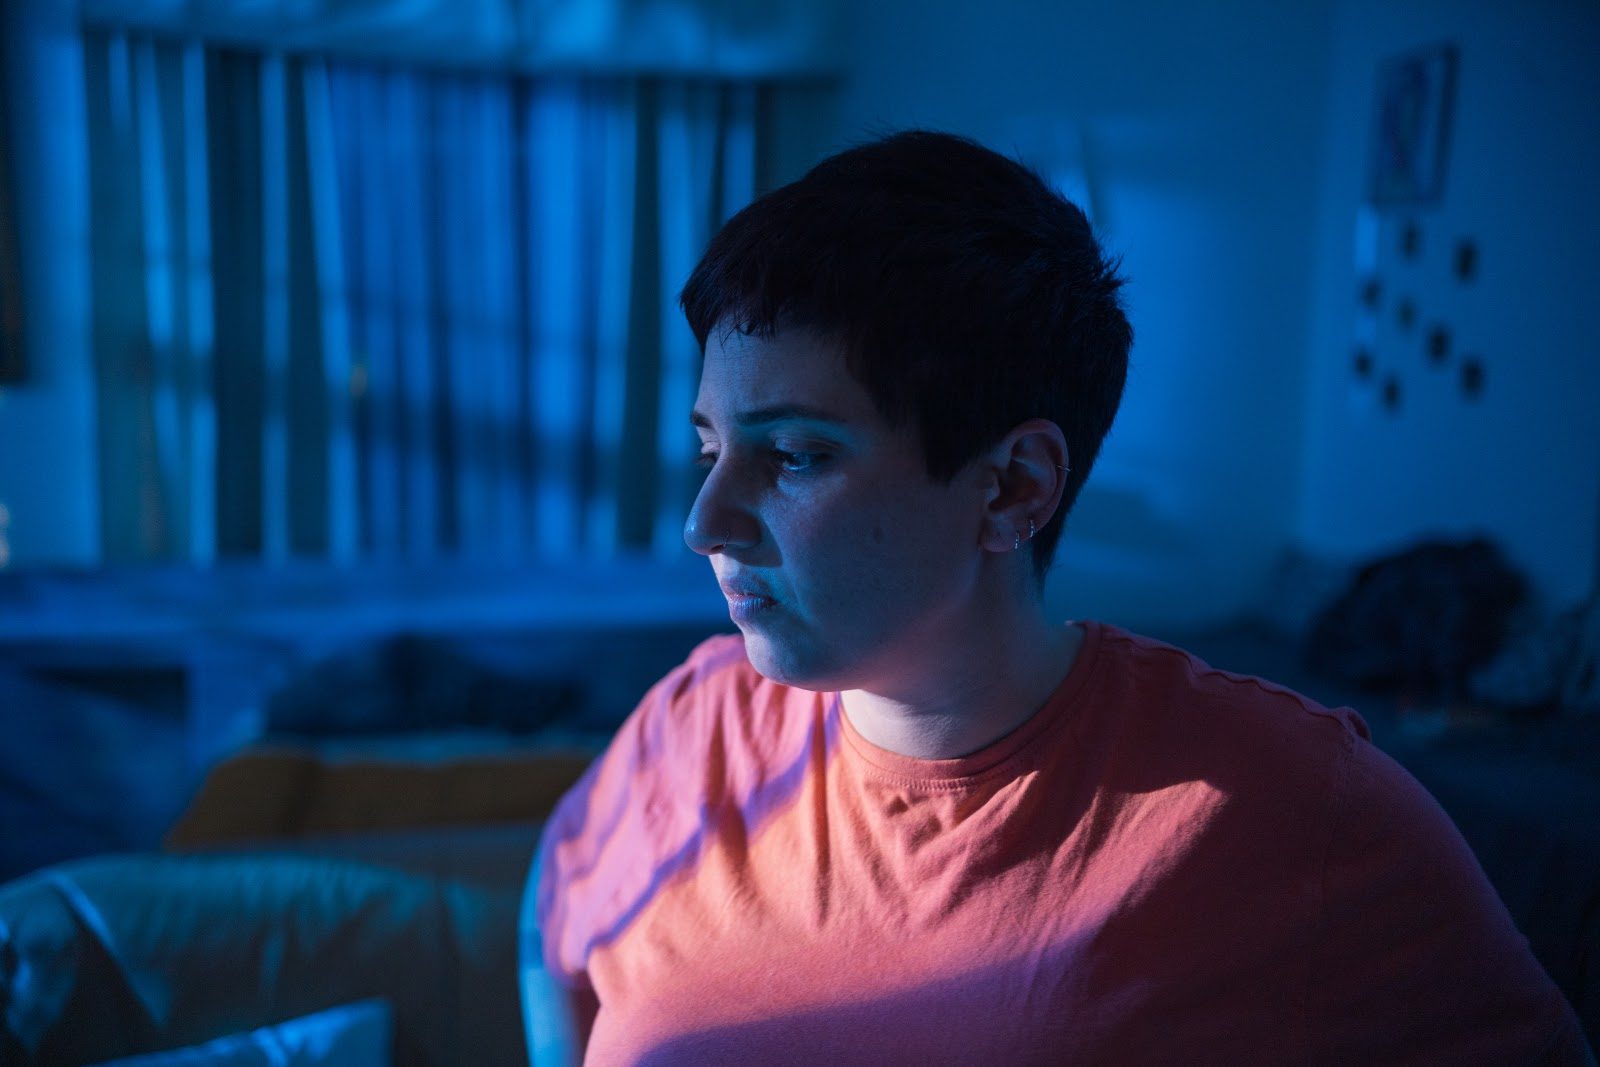 A portrait of the lead actor in a dark blue lit room wearing a reddish t-shirt. She is looking down